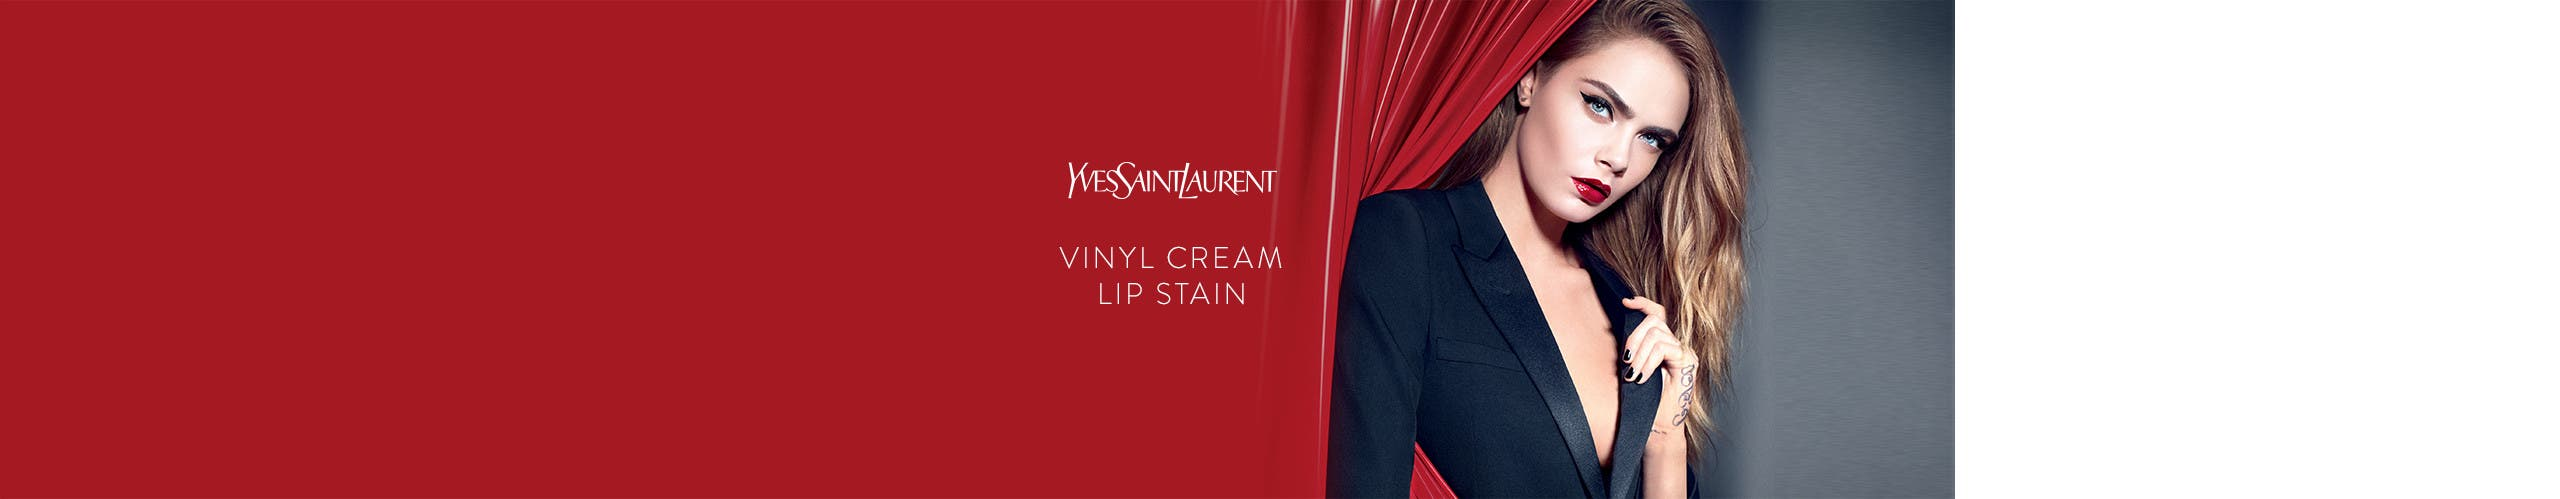 Introducing Vinyl Cream Lip Stain.